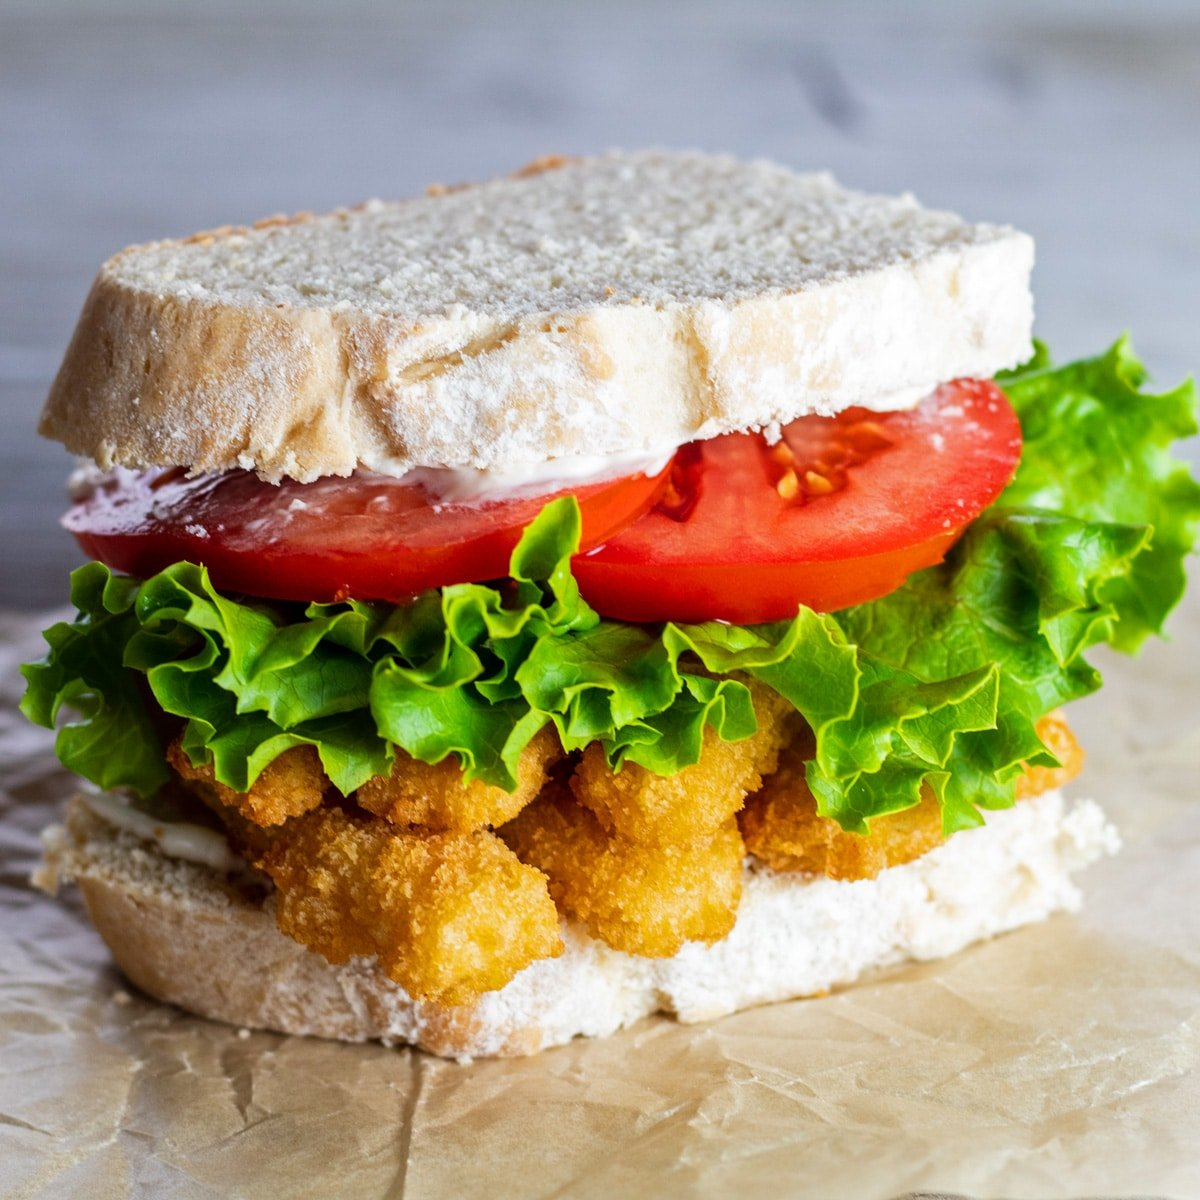 Fish stick sandwich with lettuce and tomato, on a plain background.